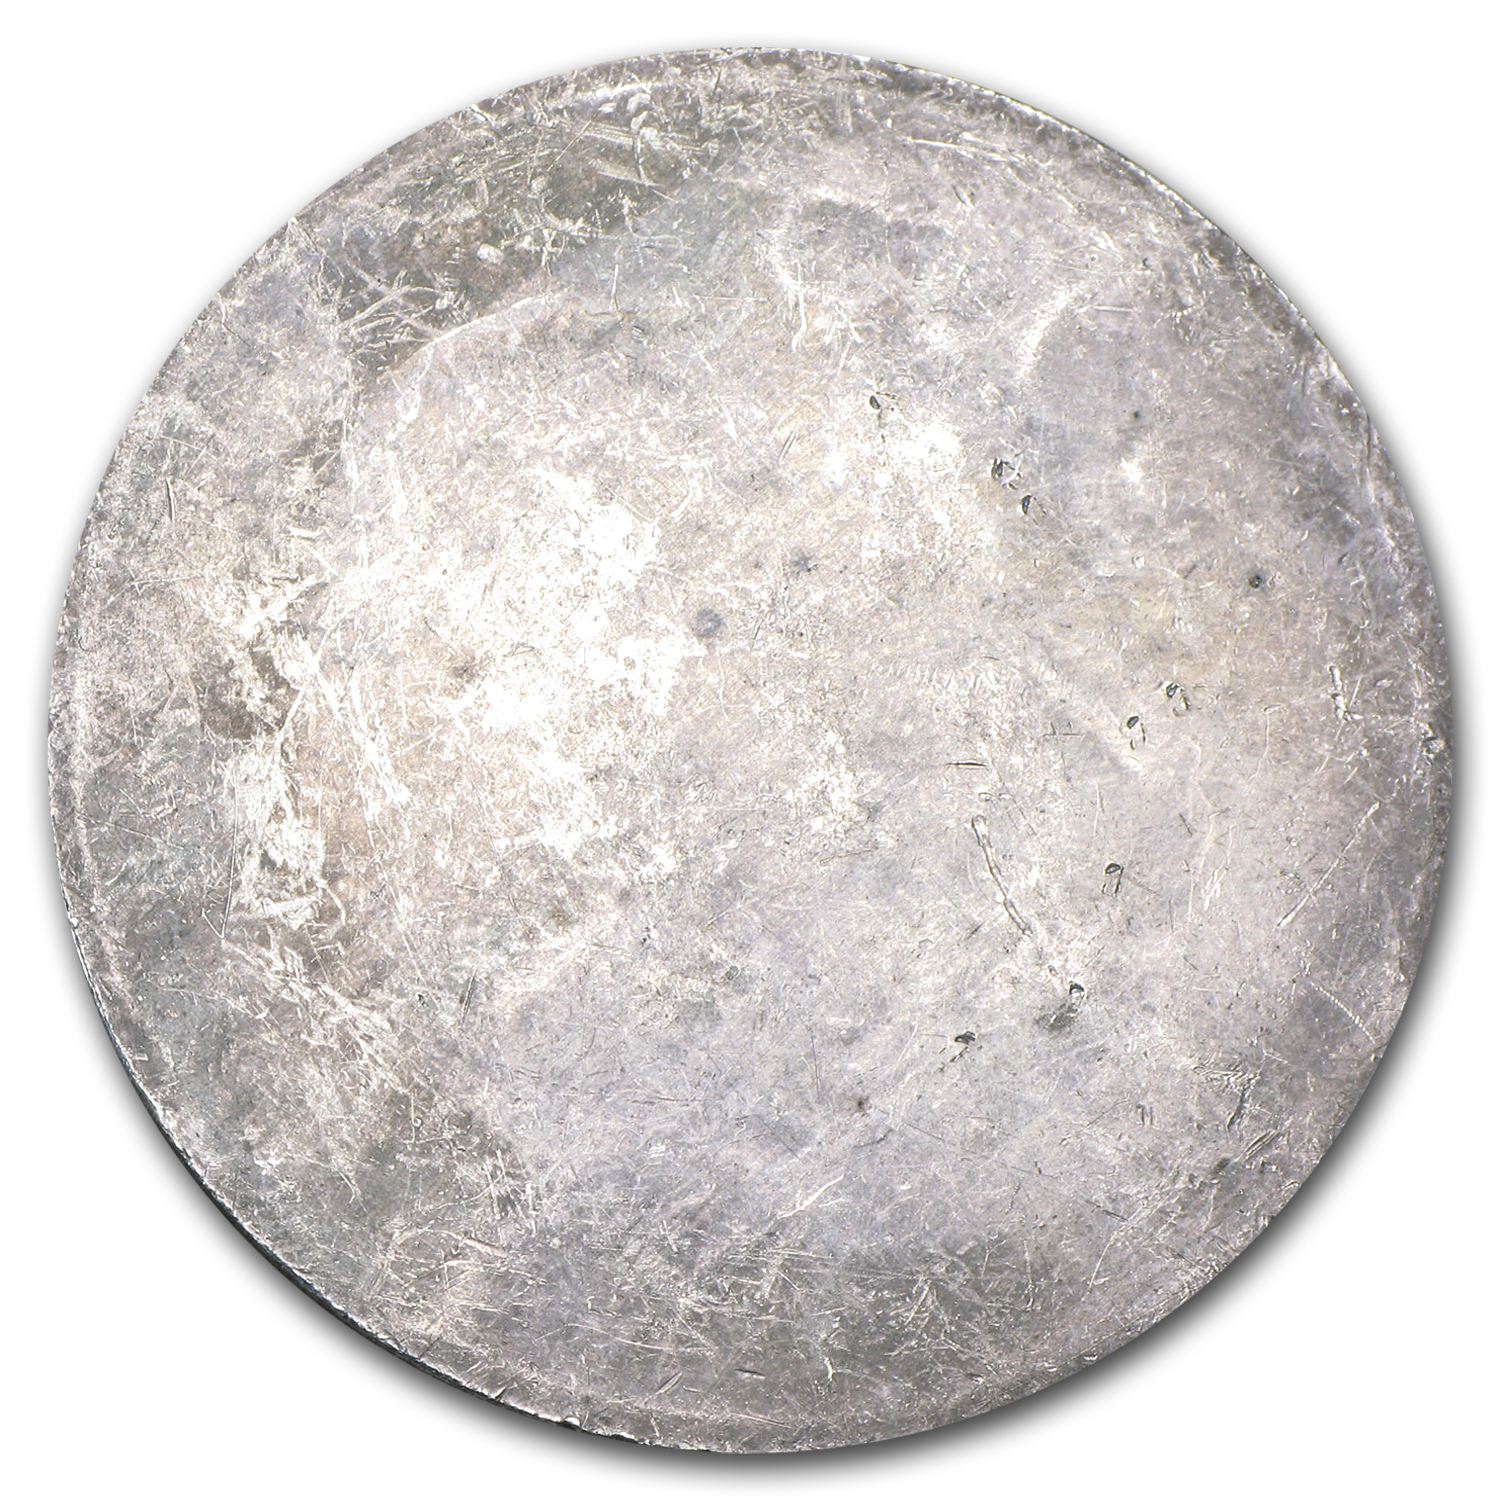 1 oz Silver Rounds - Georgetown, Colorado (45 mm)